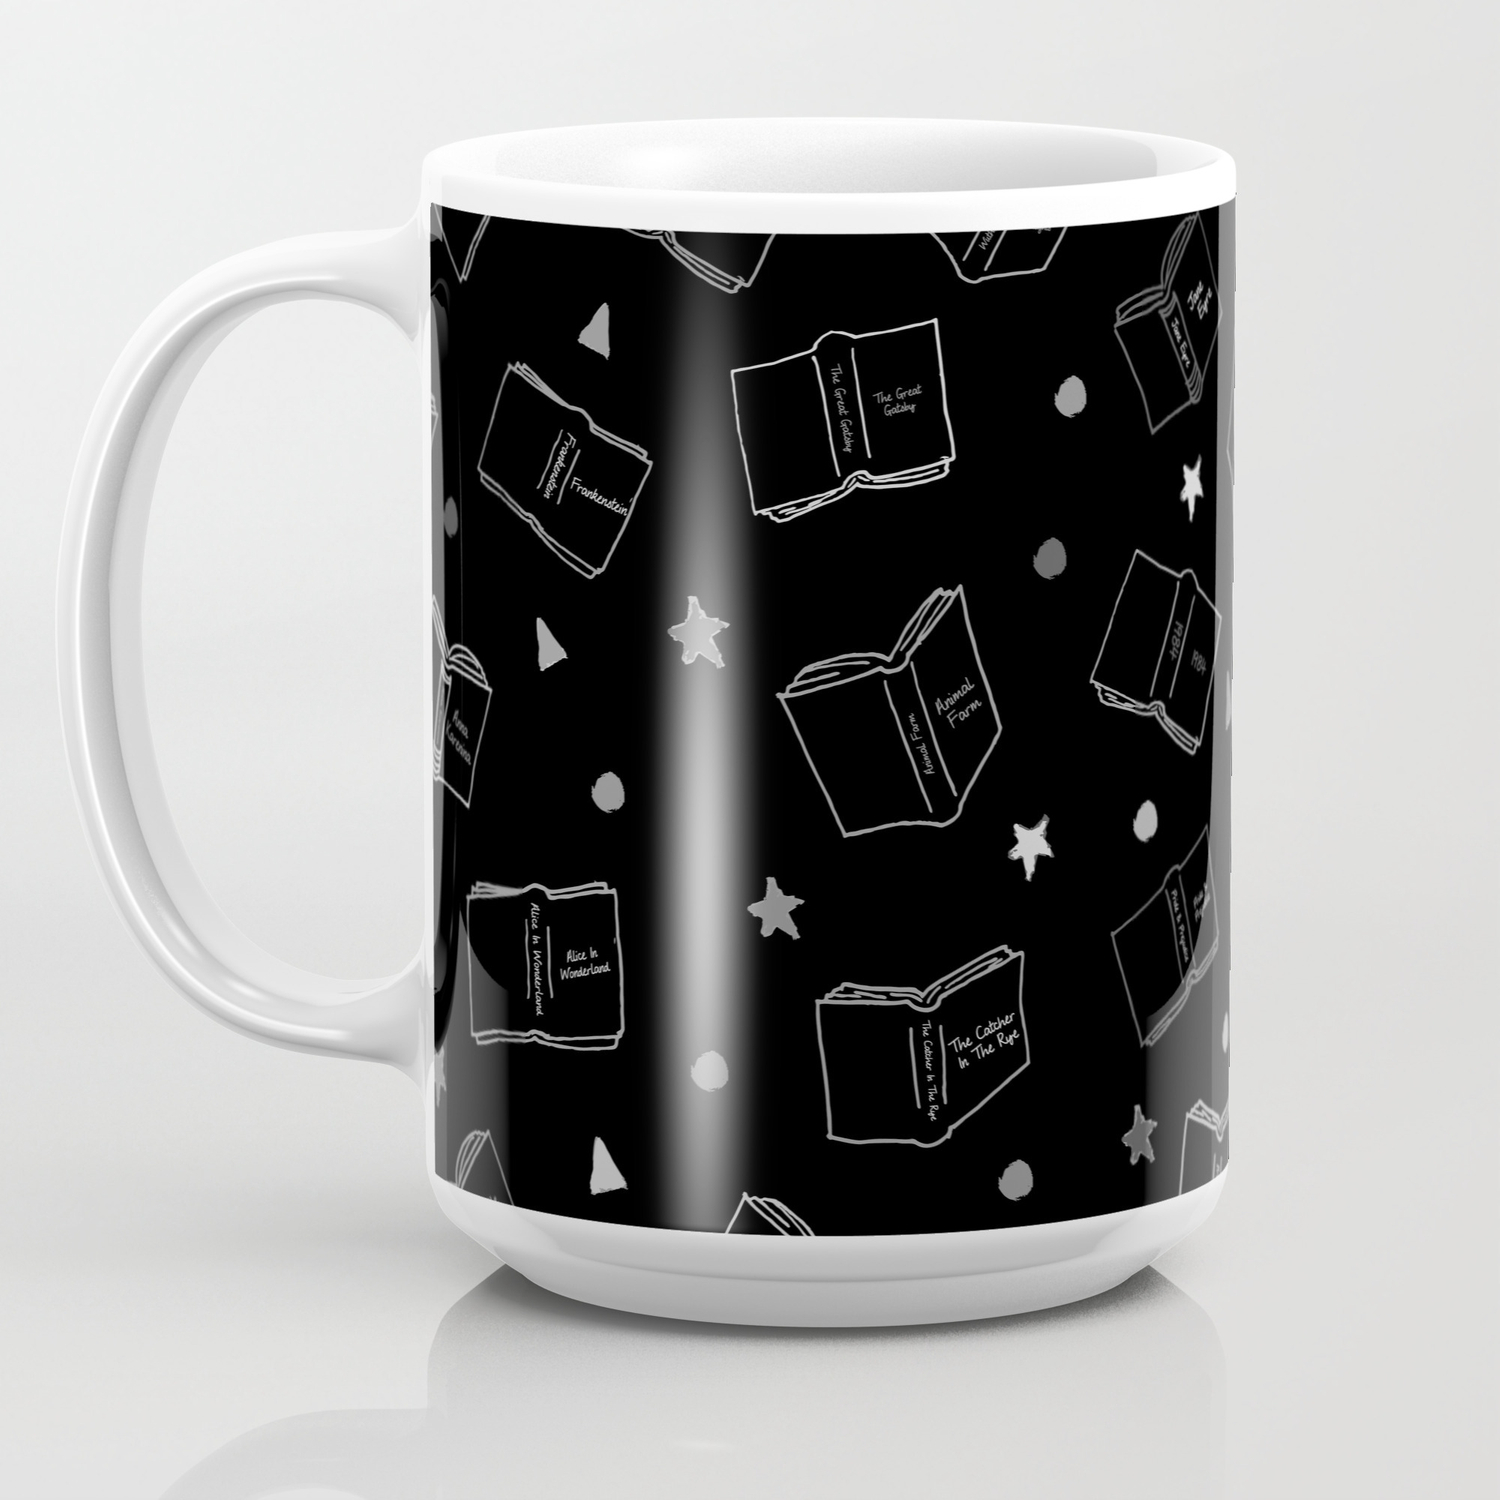 314e9d7e683 Classic Books Black and White Coffee Mug